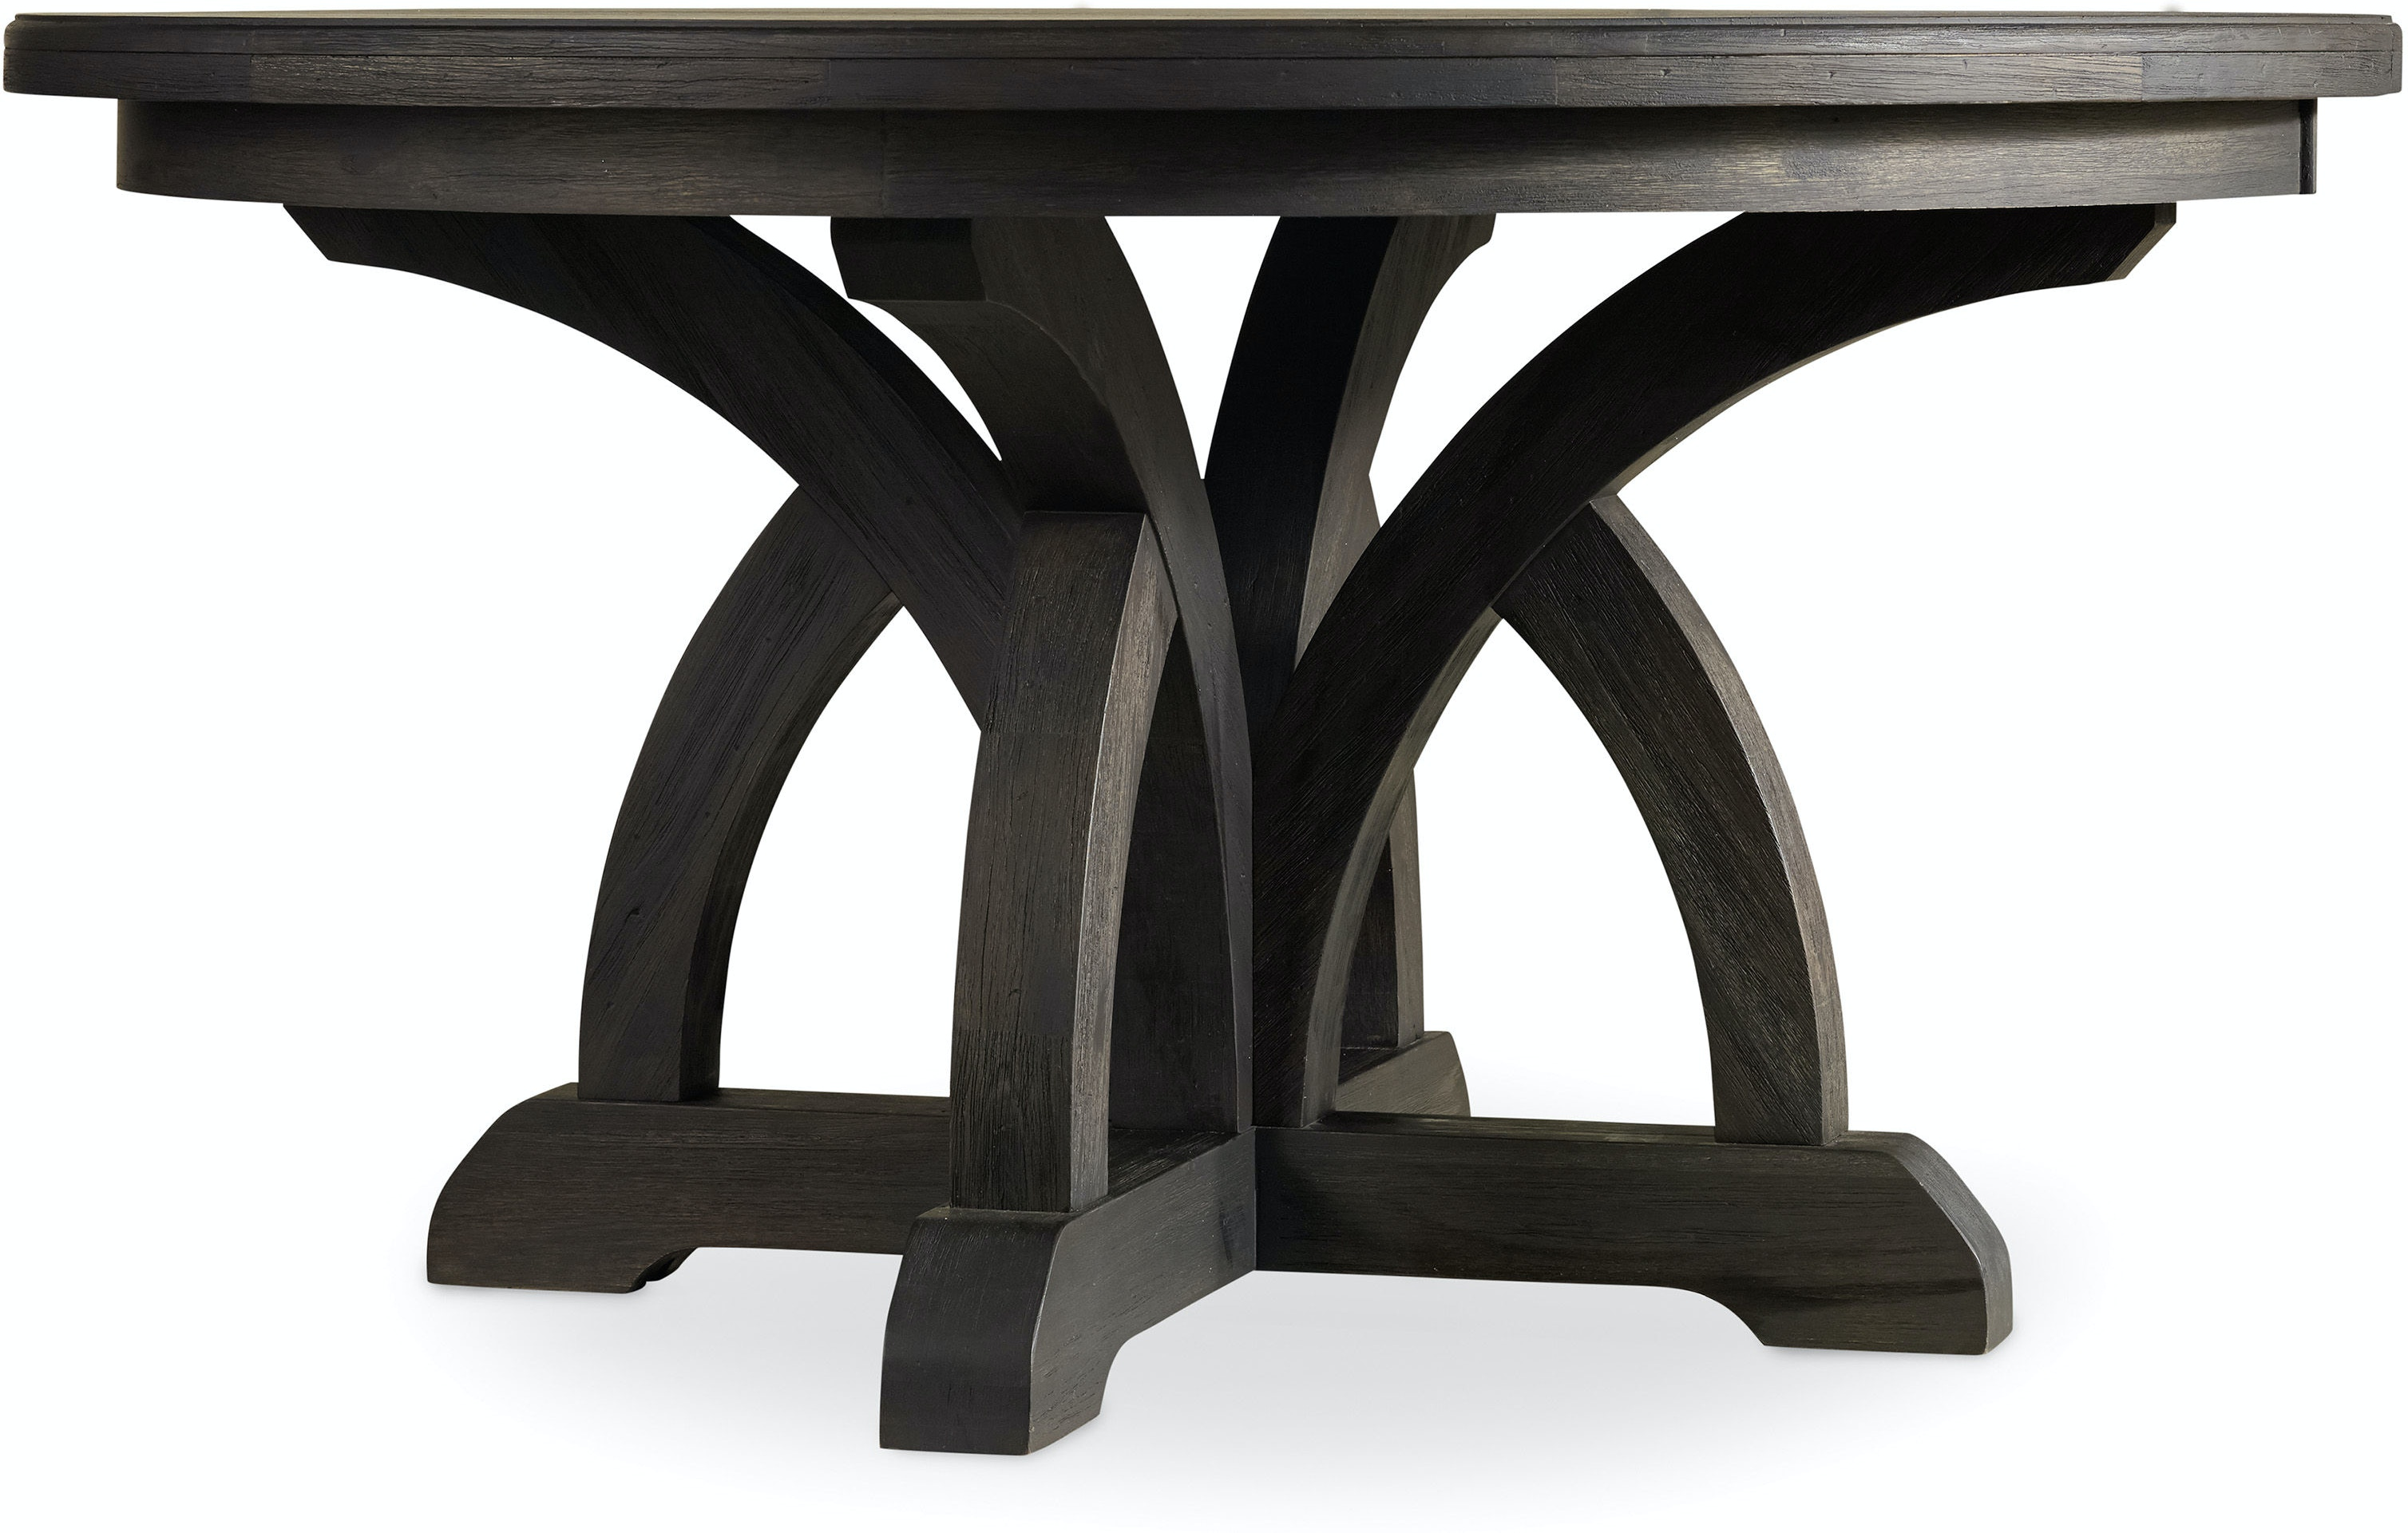 Hooker Furniture Dining Room Corsica Dark Round Dining Table w/1